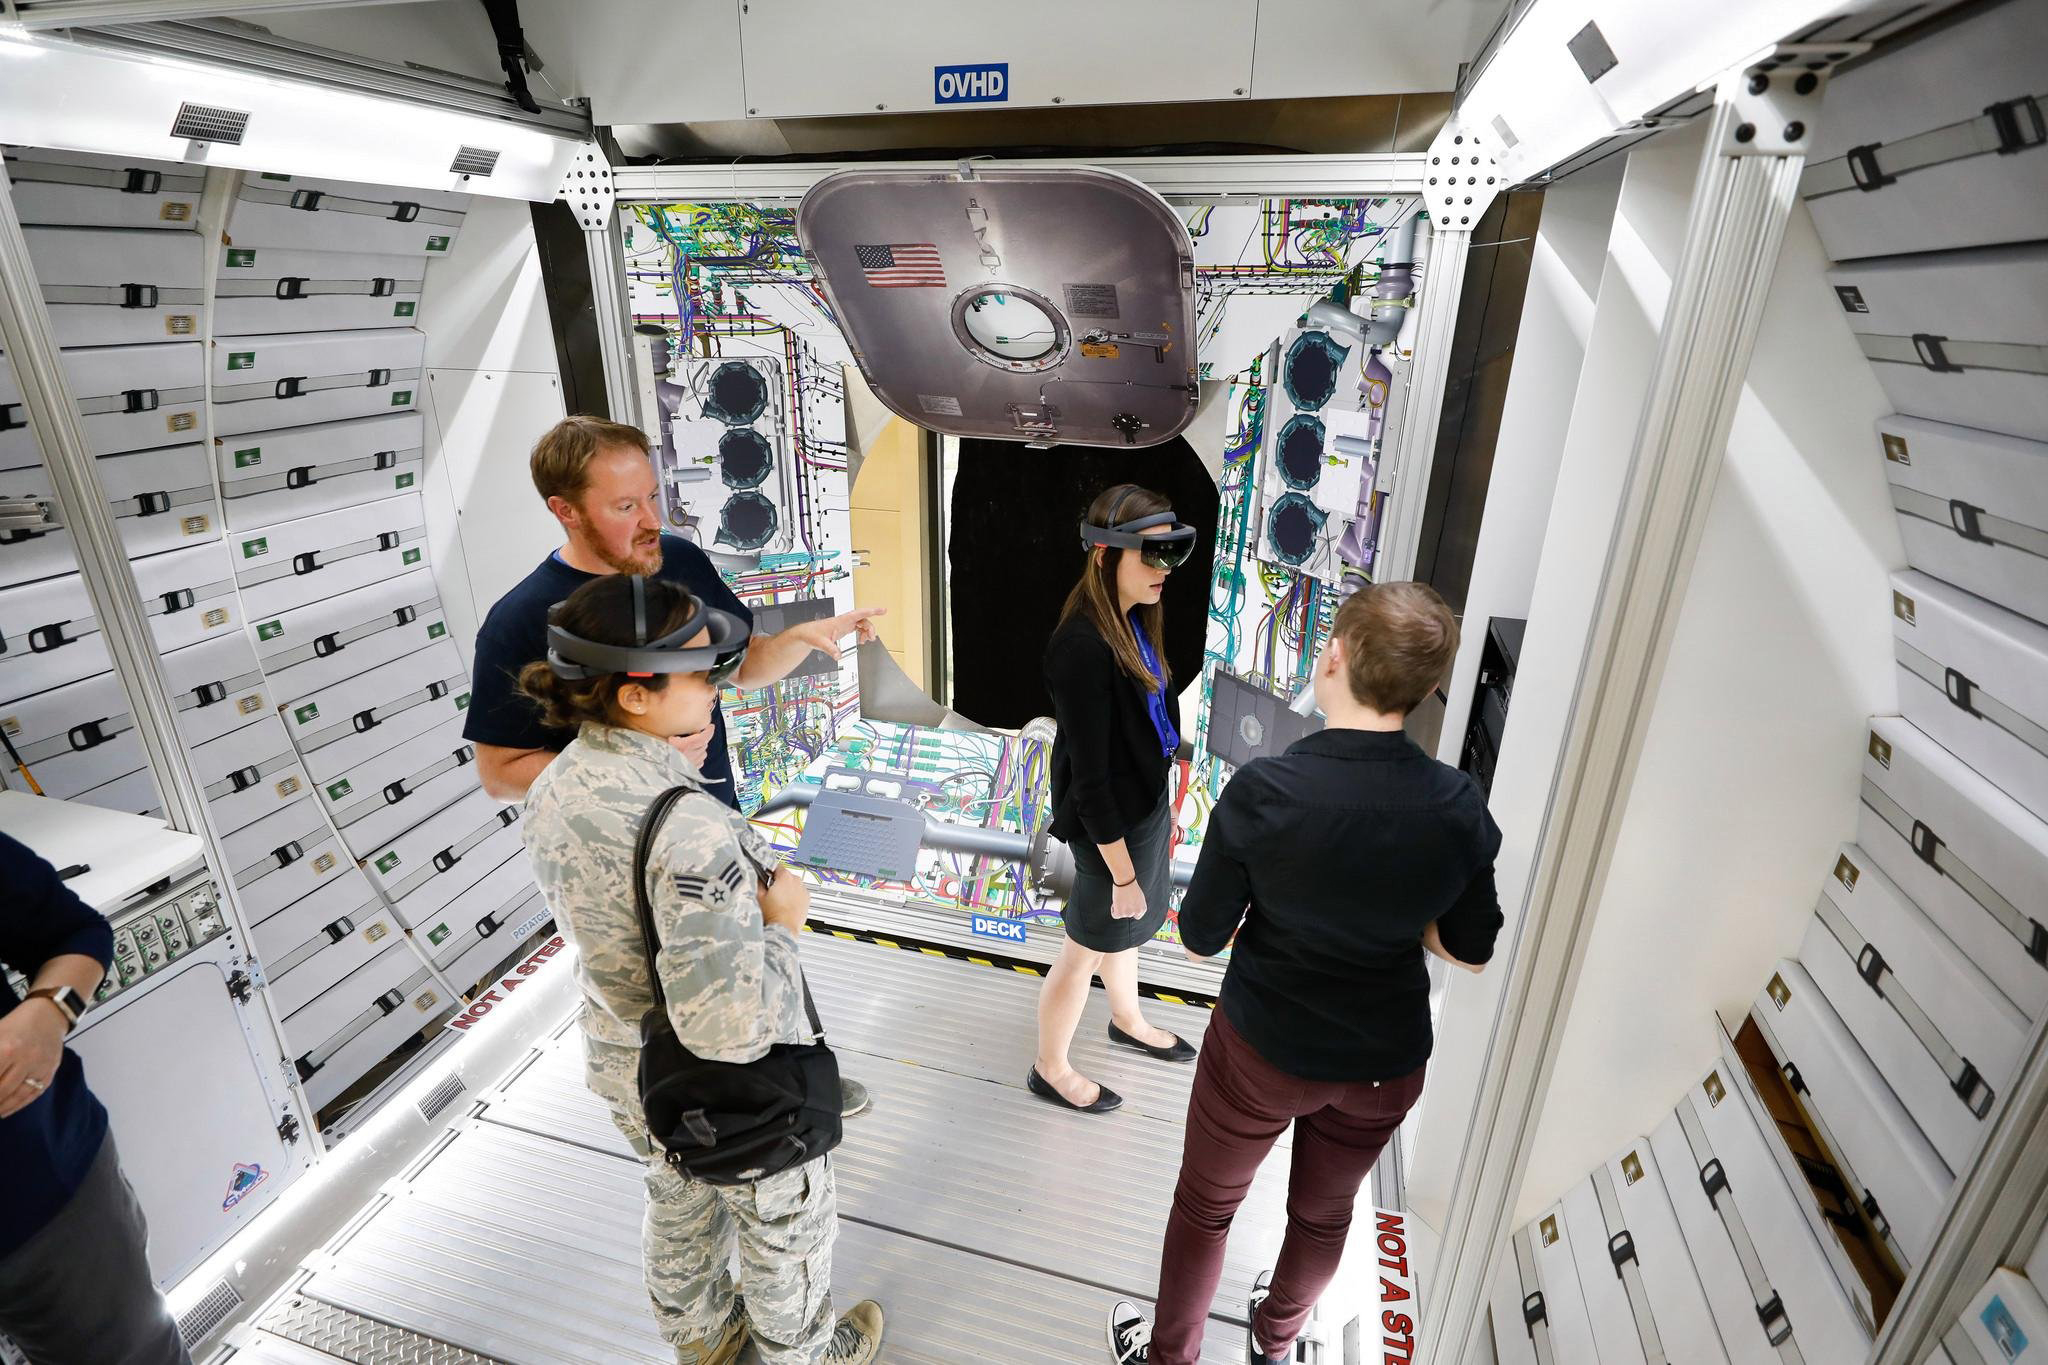 Augmented reality in education and astronaut training